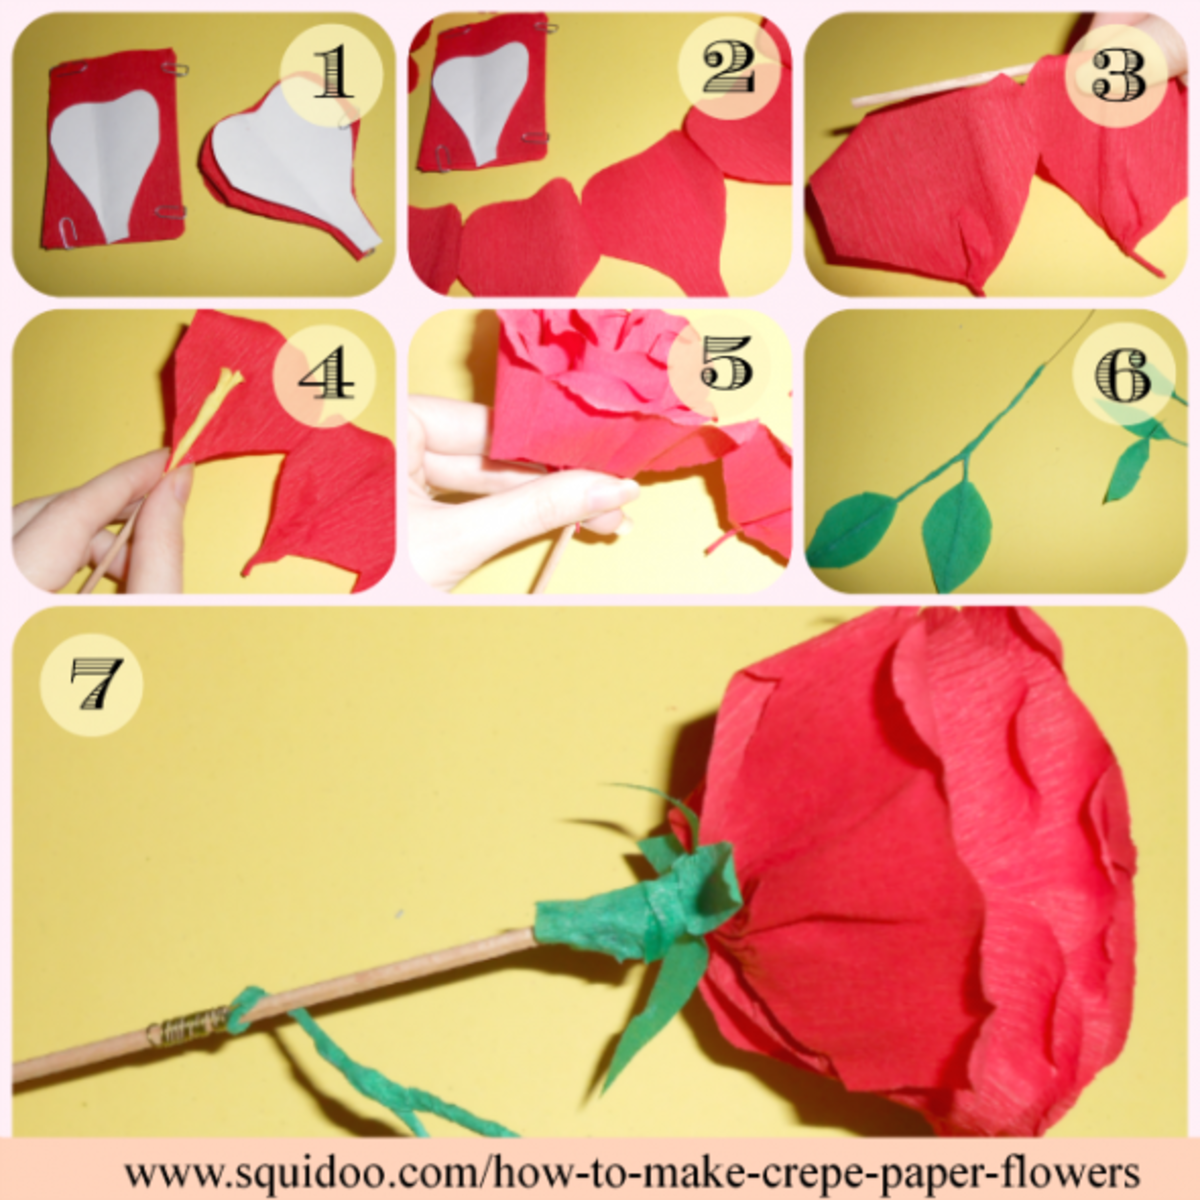 How to make crepe paper flowers step by step tutorials hubpages step by step tutorial in pictures and words mightylinksfo